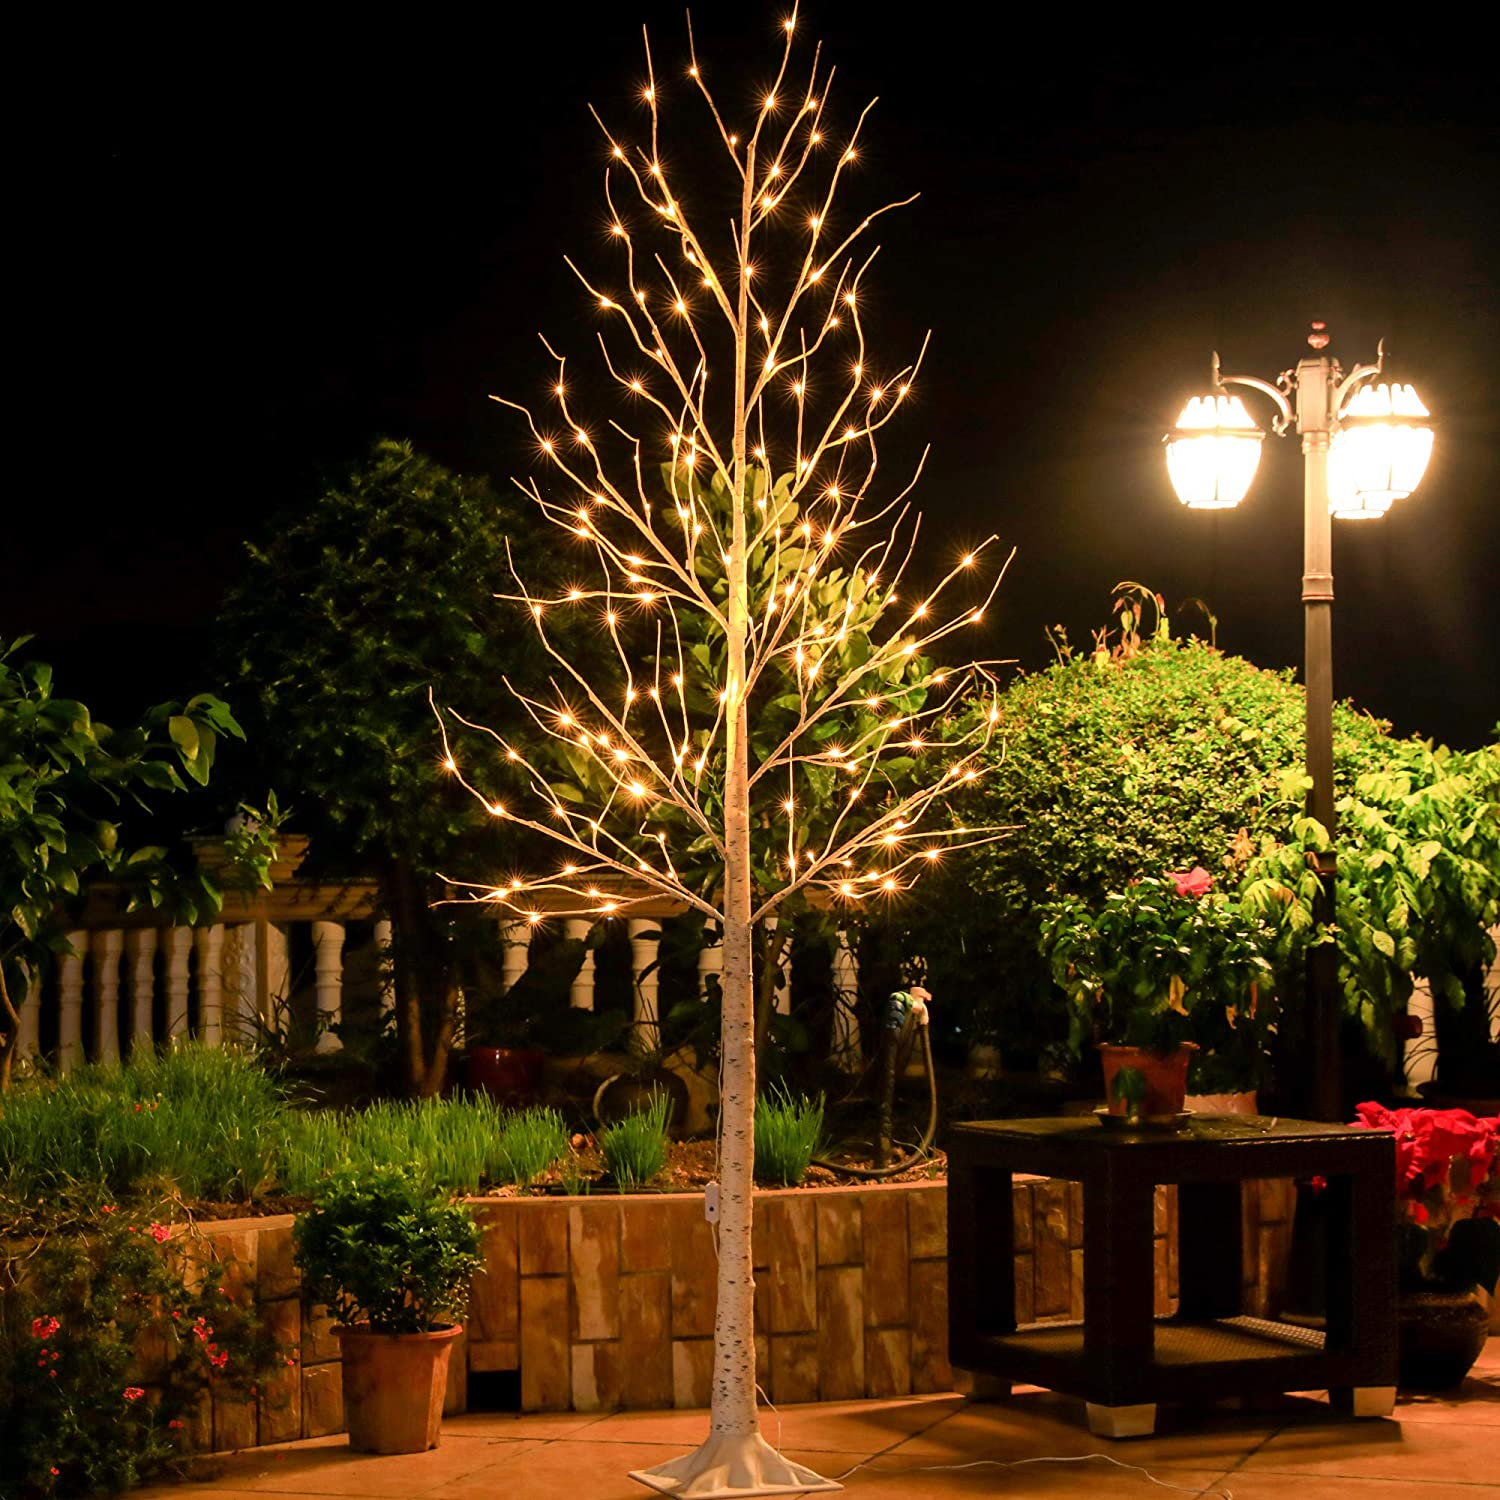 Leruckdite LED Birch Tree 8ft Lig Store National products 136L Christmas Decorations